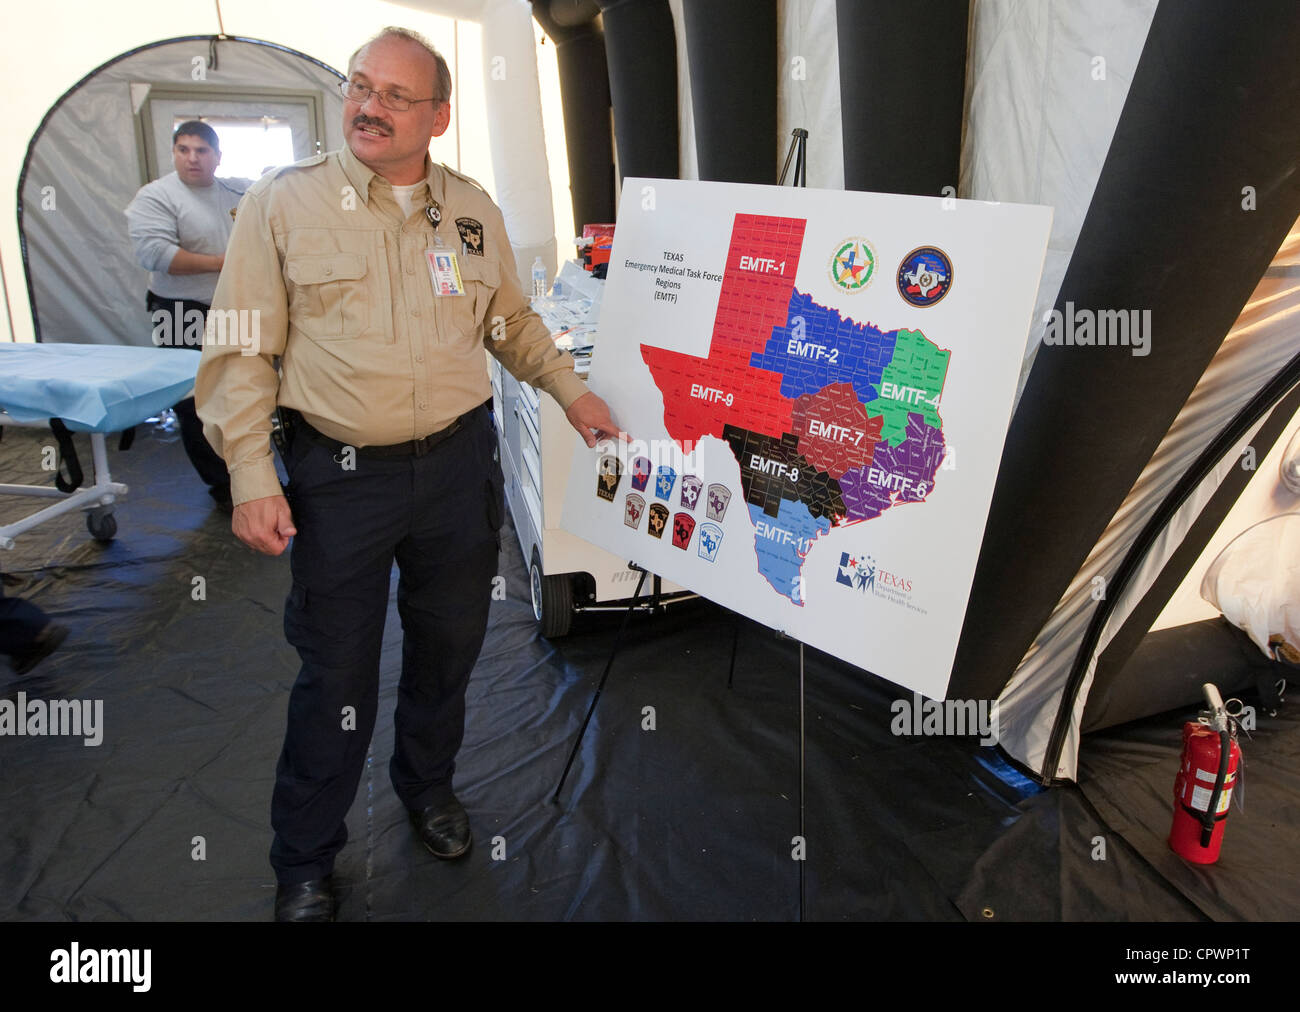 male training officer , displays map of Texas showing the different Emergency Medical Task Force Regions - Stock Image